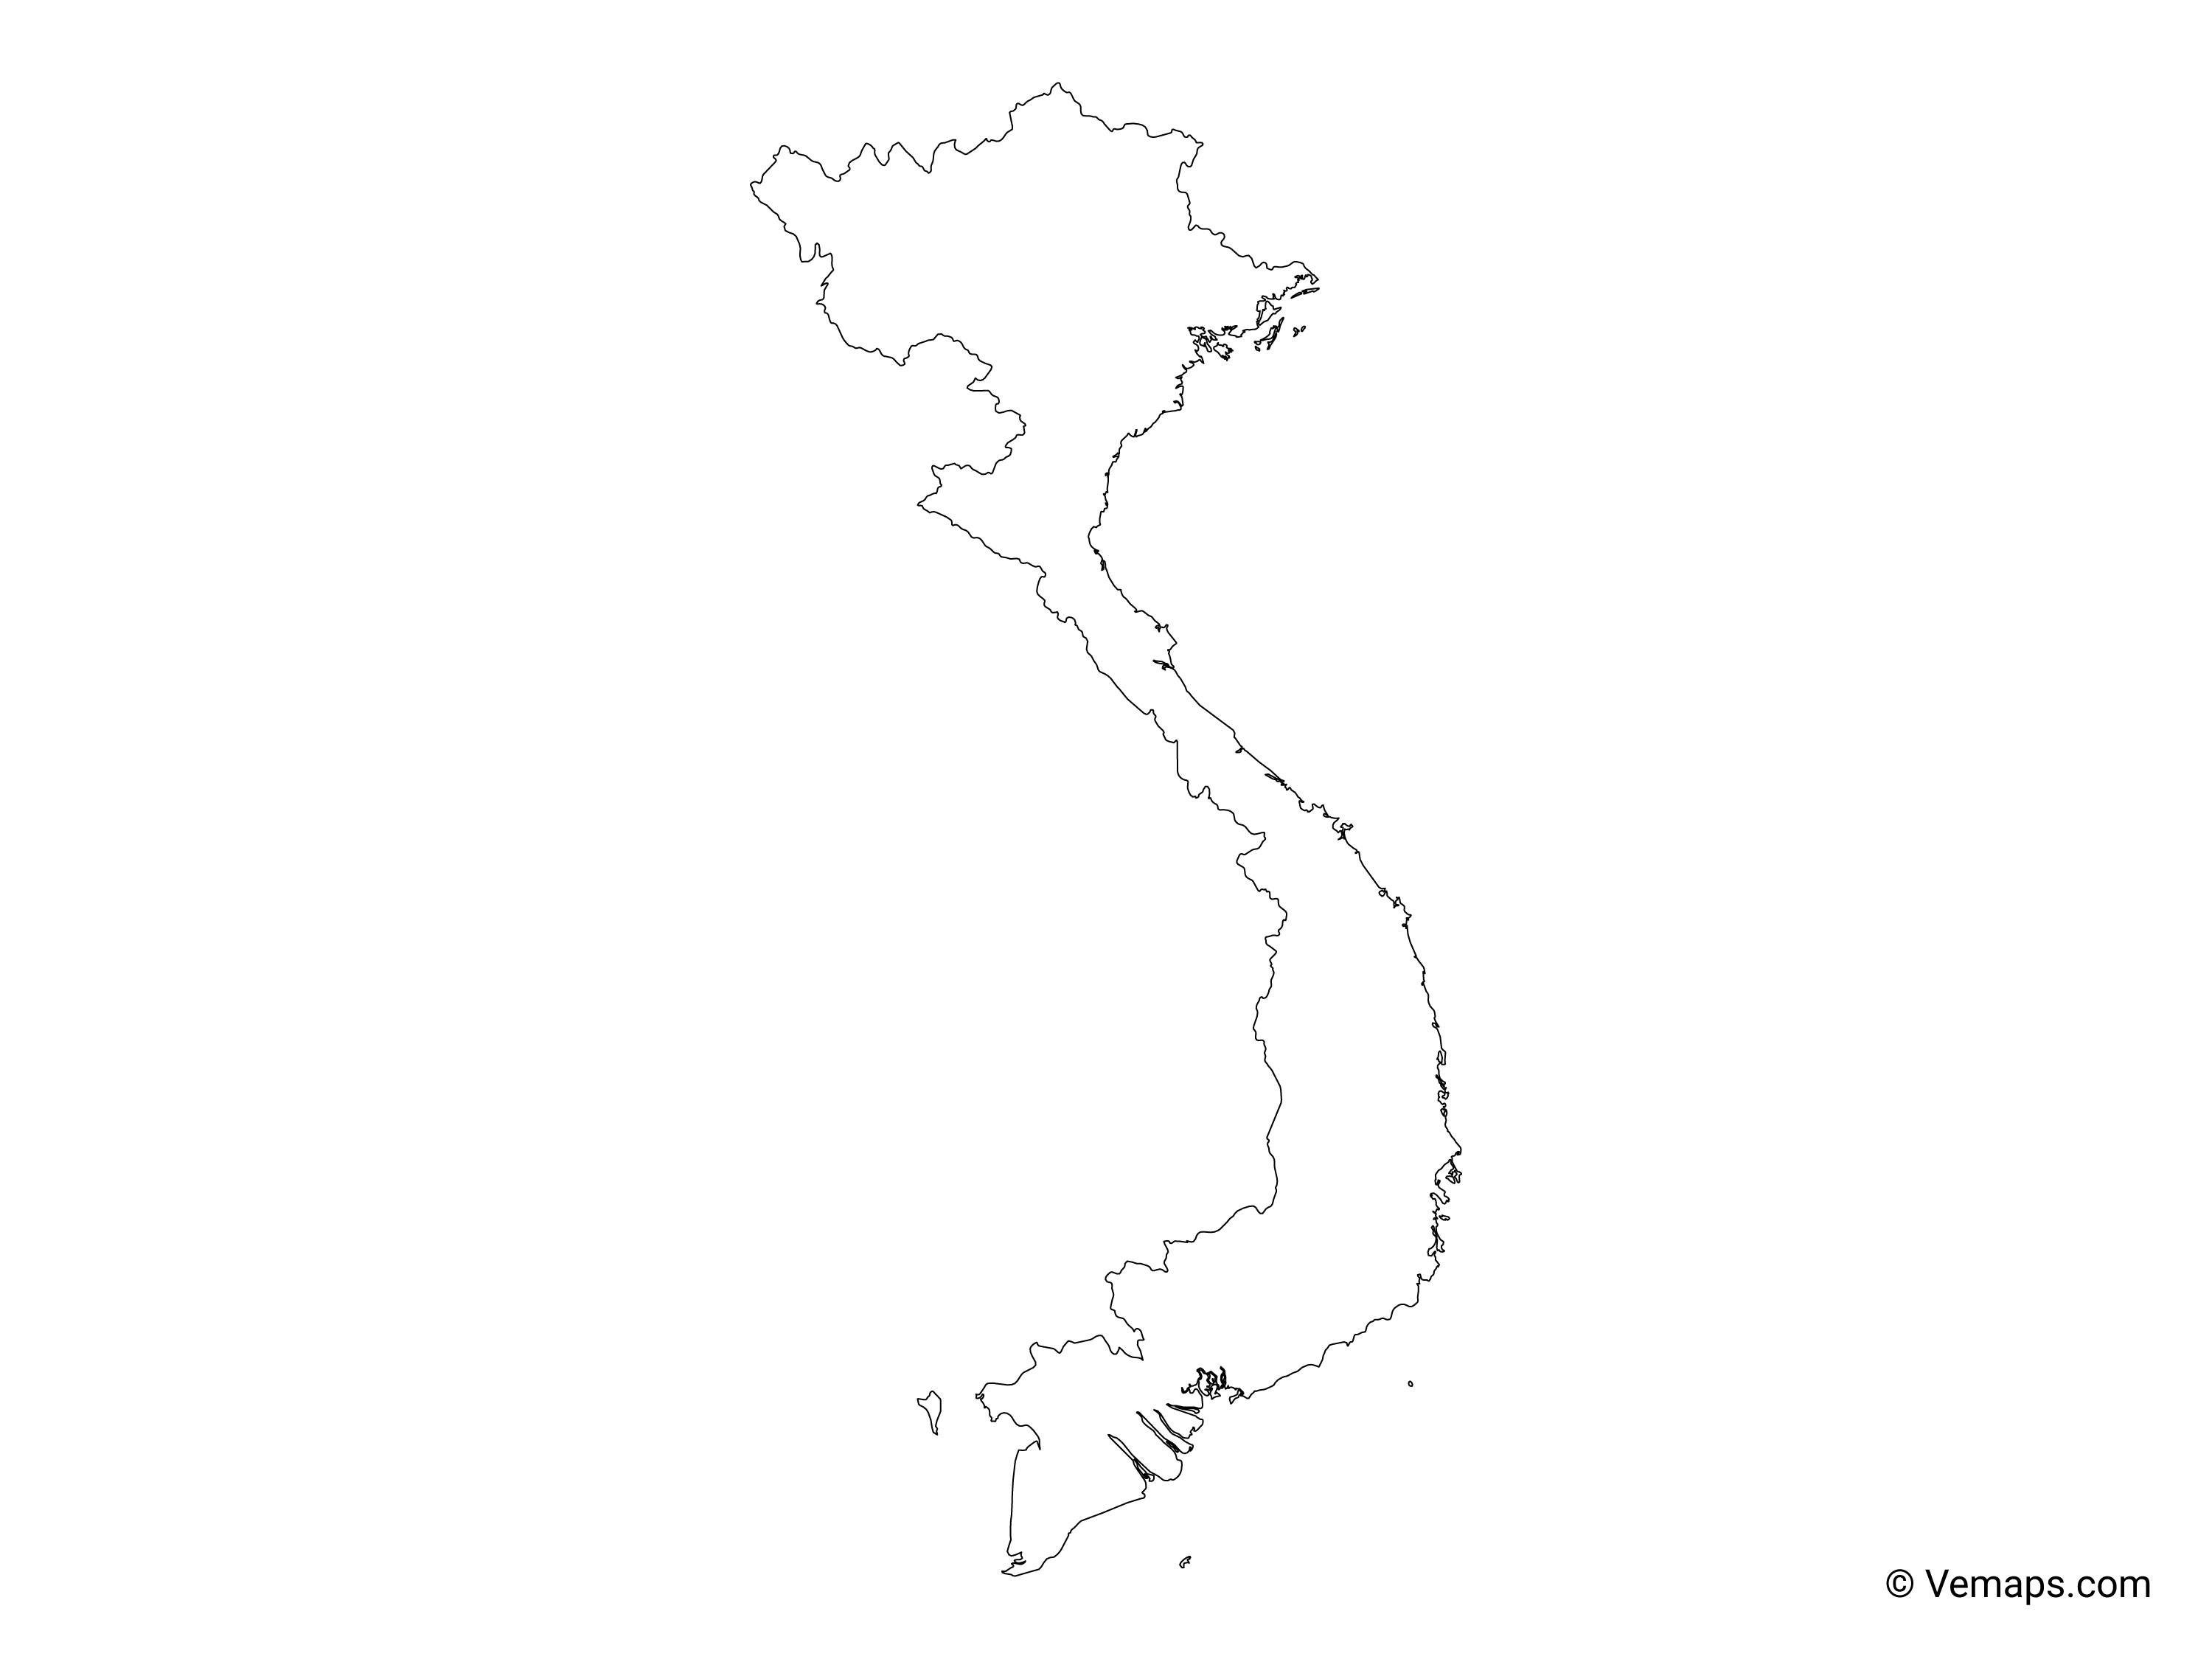 Outline Map of Vietnam | Free Vector Maps